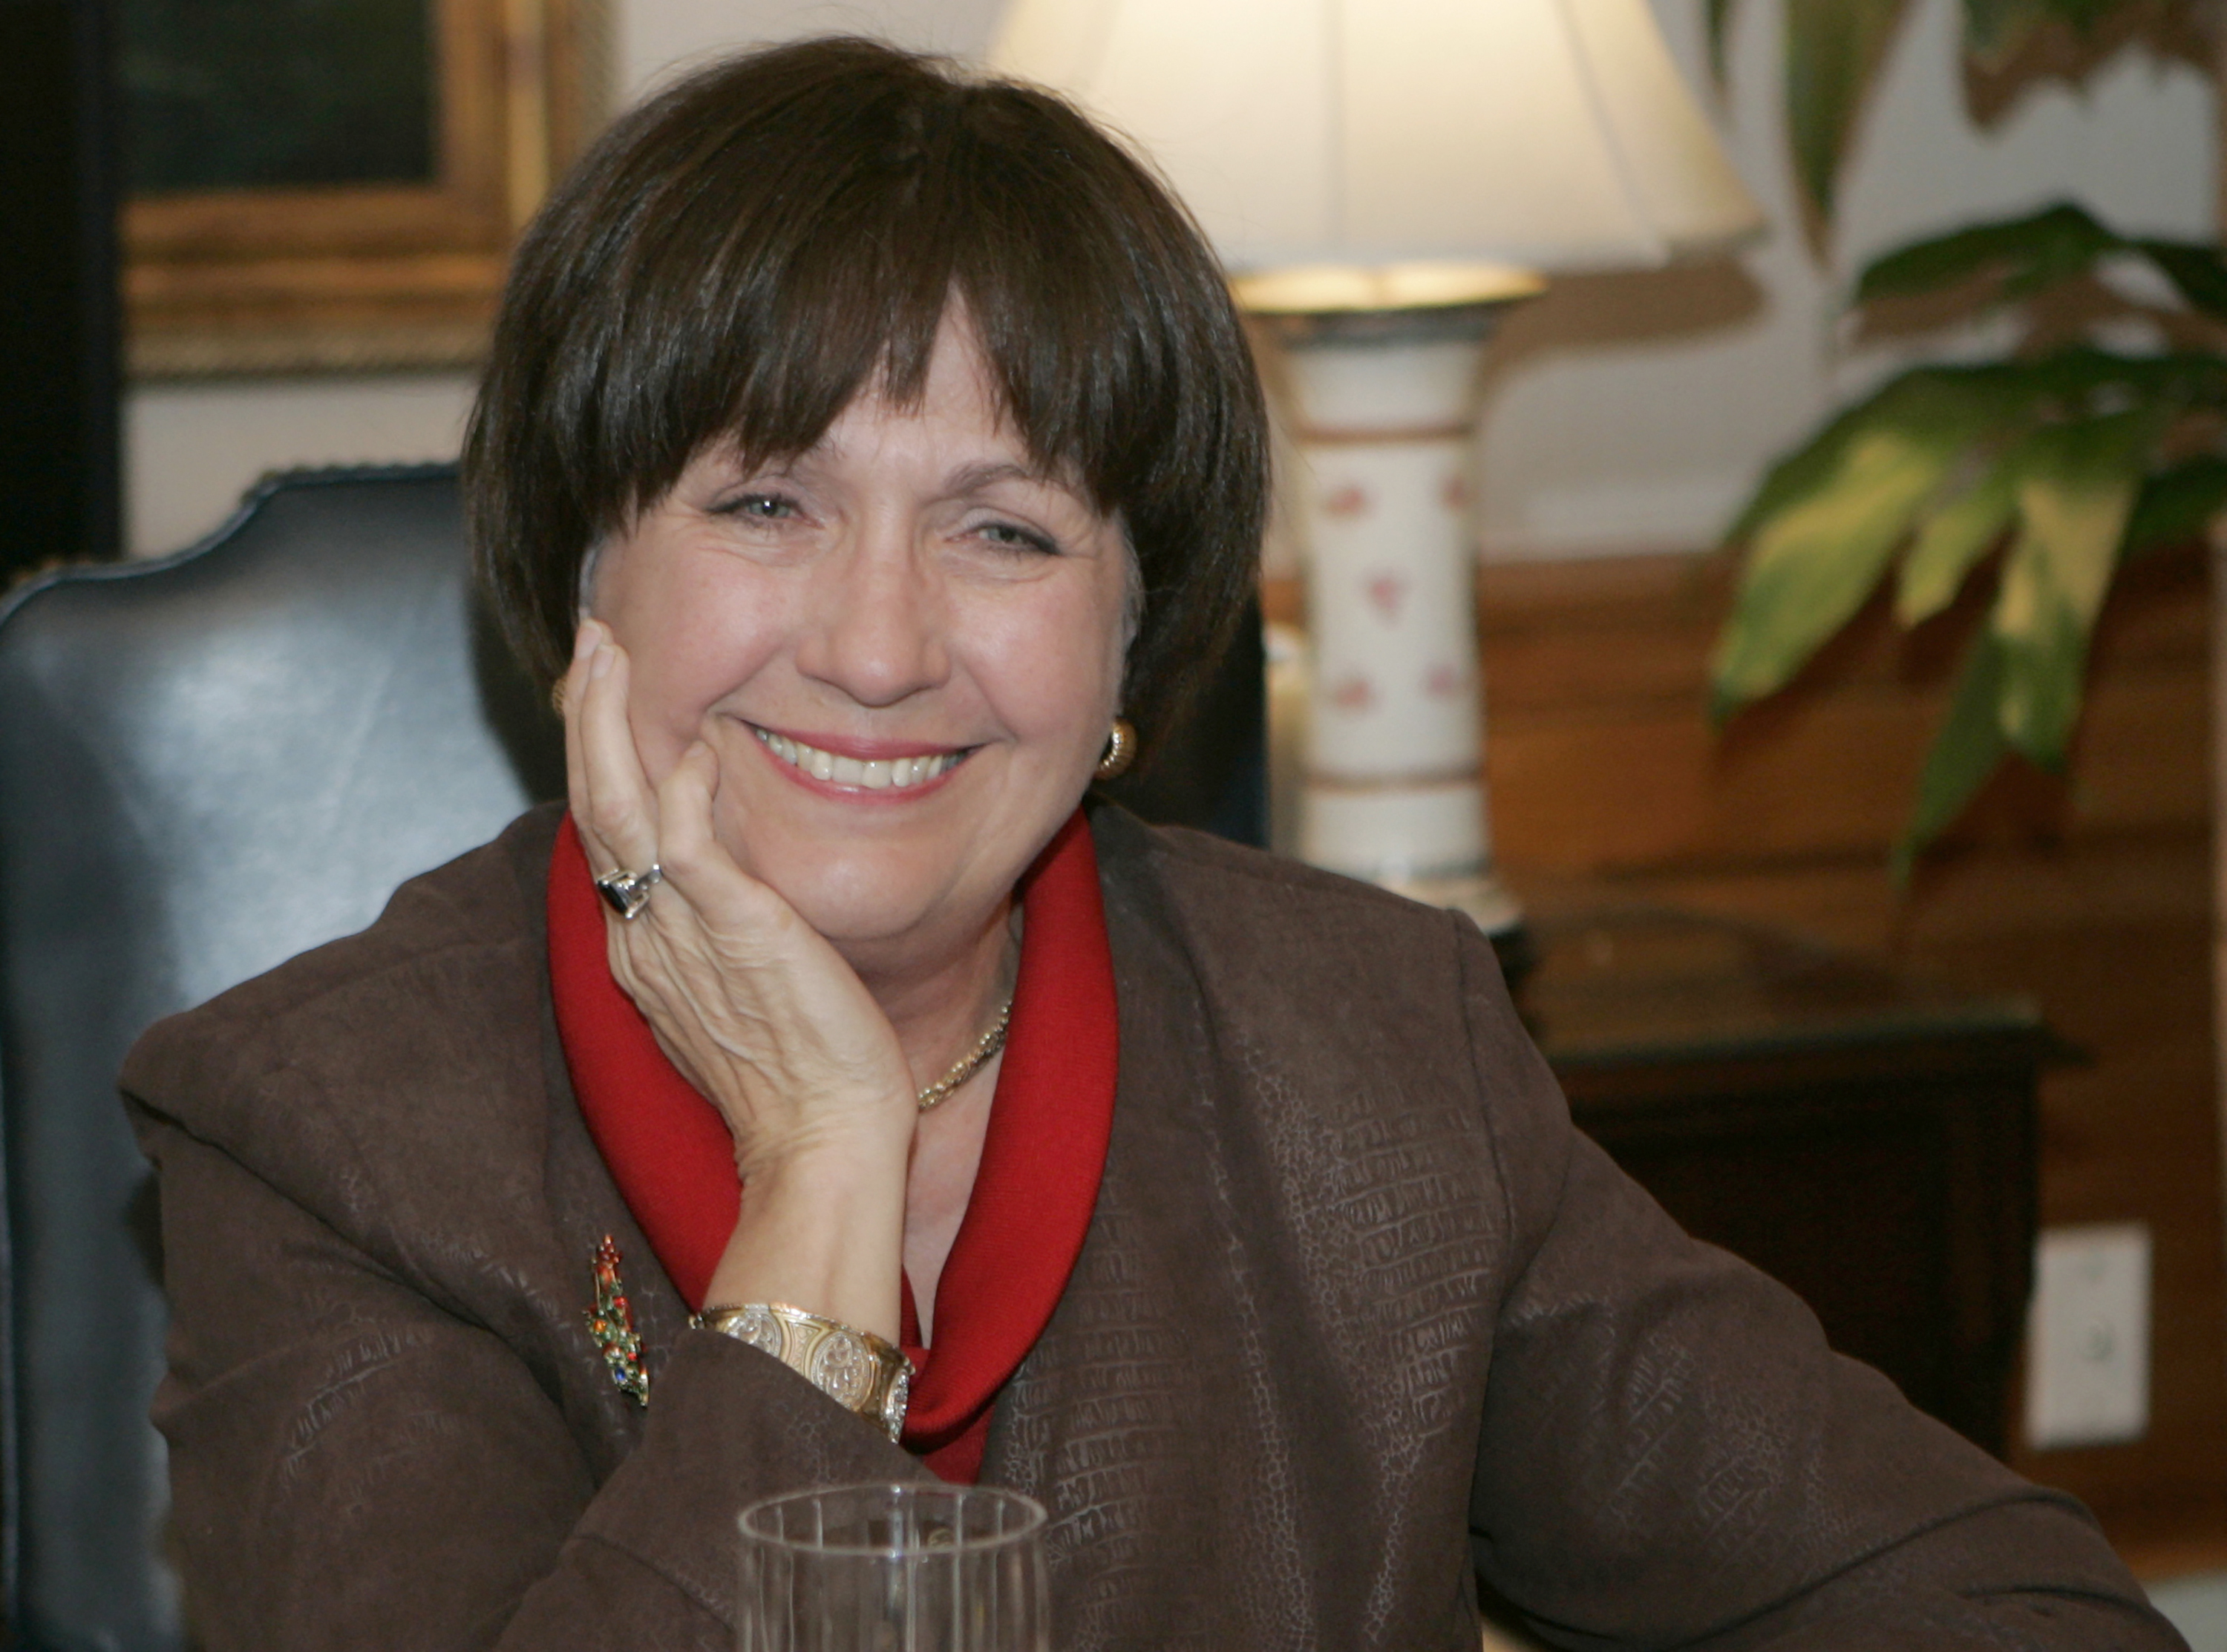 Kathleen Blanco, Louisianas governor during Katrina, dies